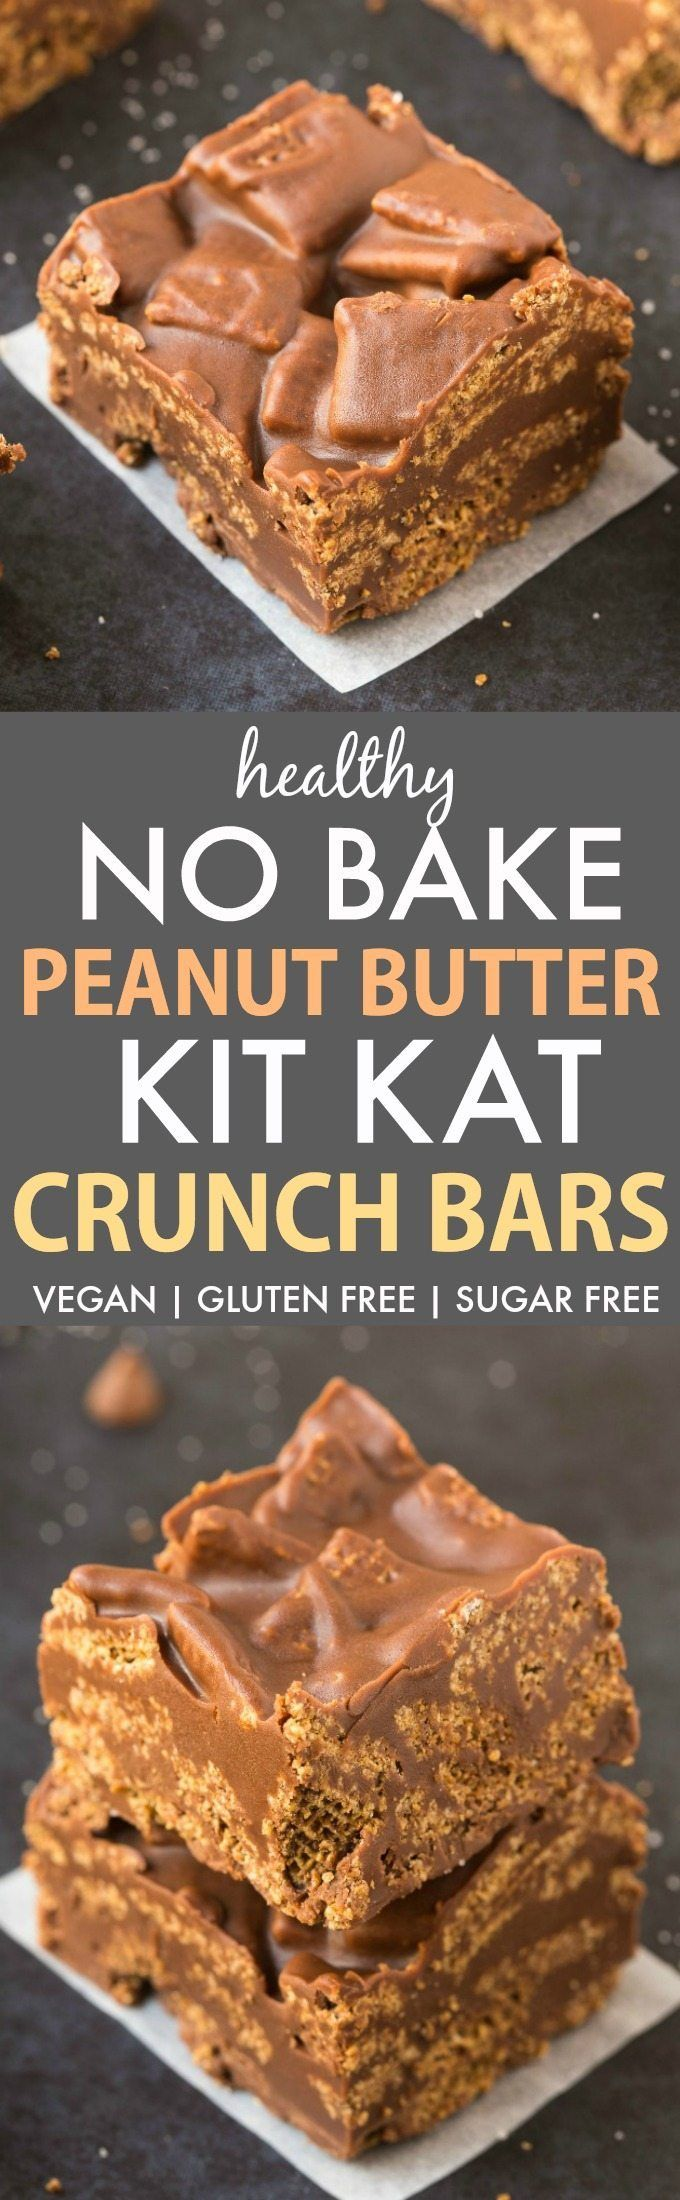 No Bake Peanut Butter Kit Kat Crunch Bars (V, GF, DF)- Easy, fuss-free and delicious, this healthy candy bar copycat combines chex cereal, chocolate and peanut butter in one! {vegan, gluten free, sugar free recipe}- thebigmansworld.com